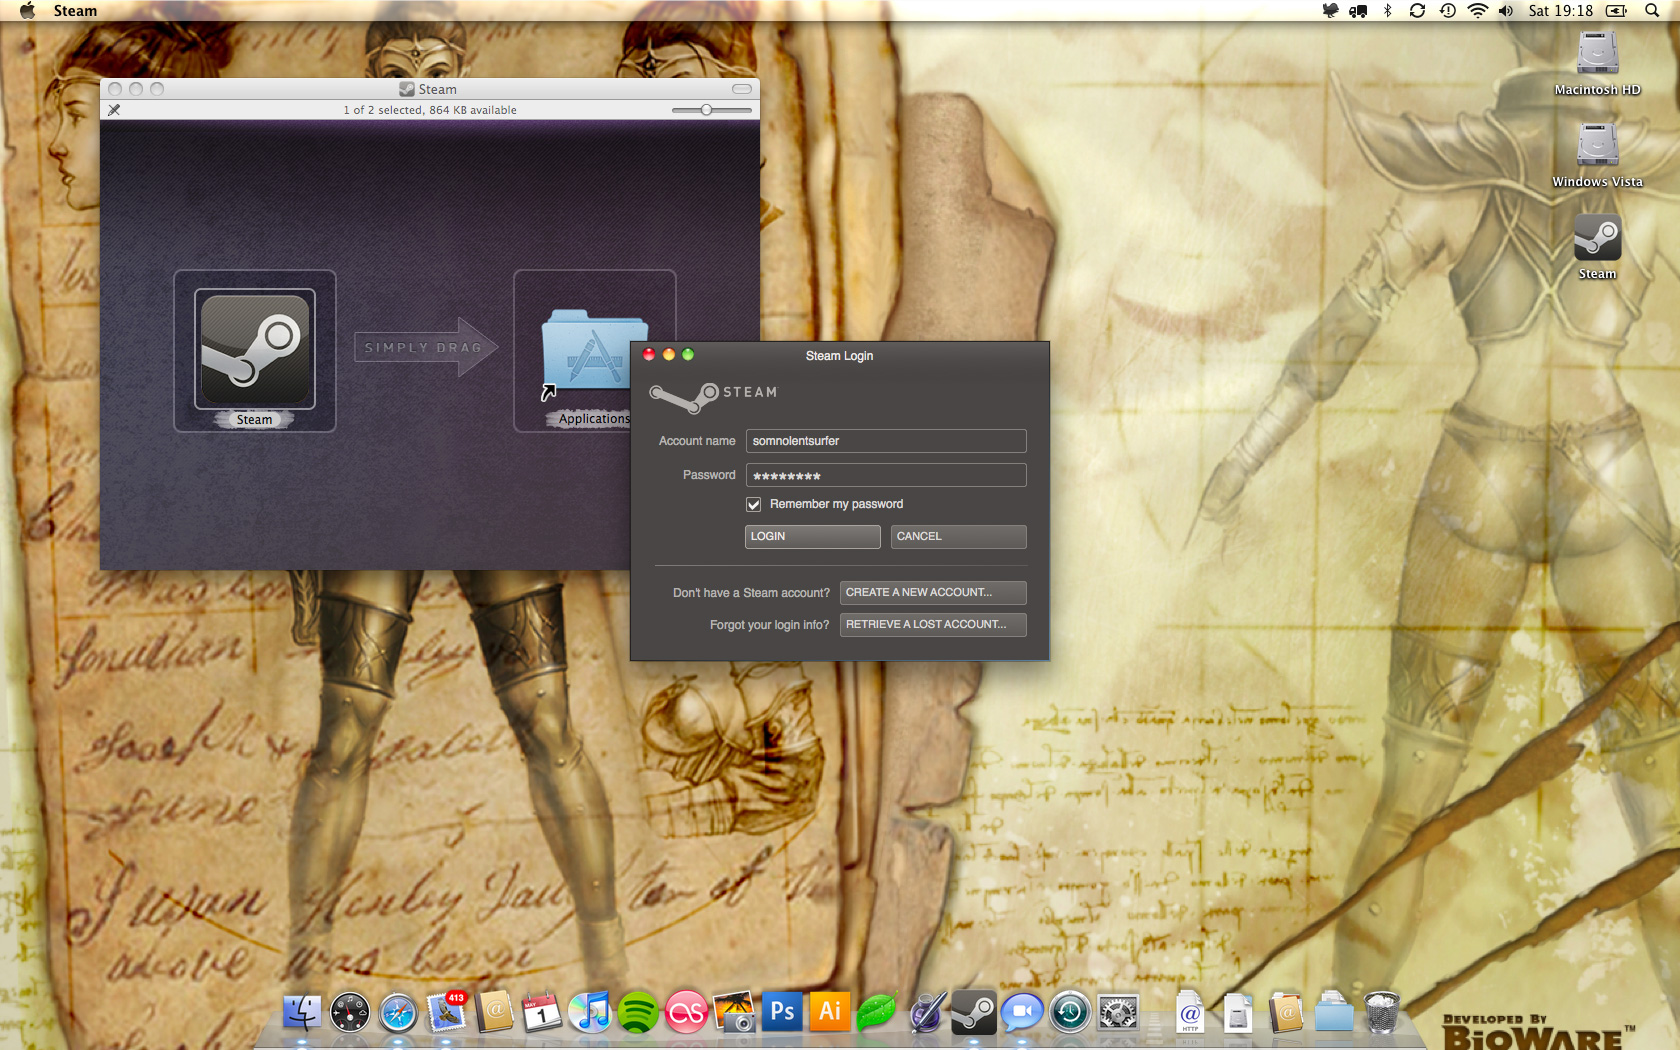 A Screenshot Of The Log In Screen For The Mac Os X Steam Client